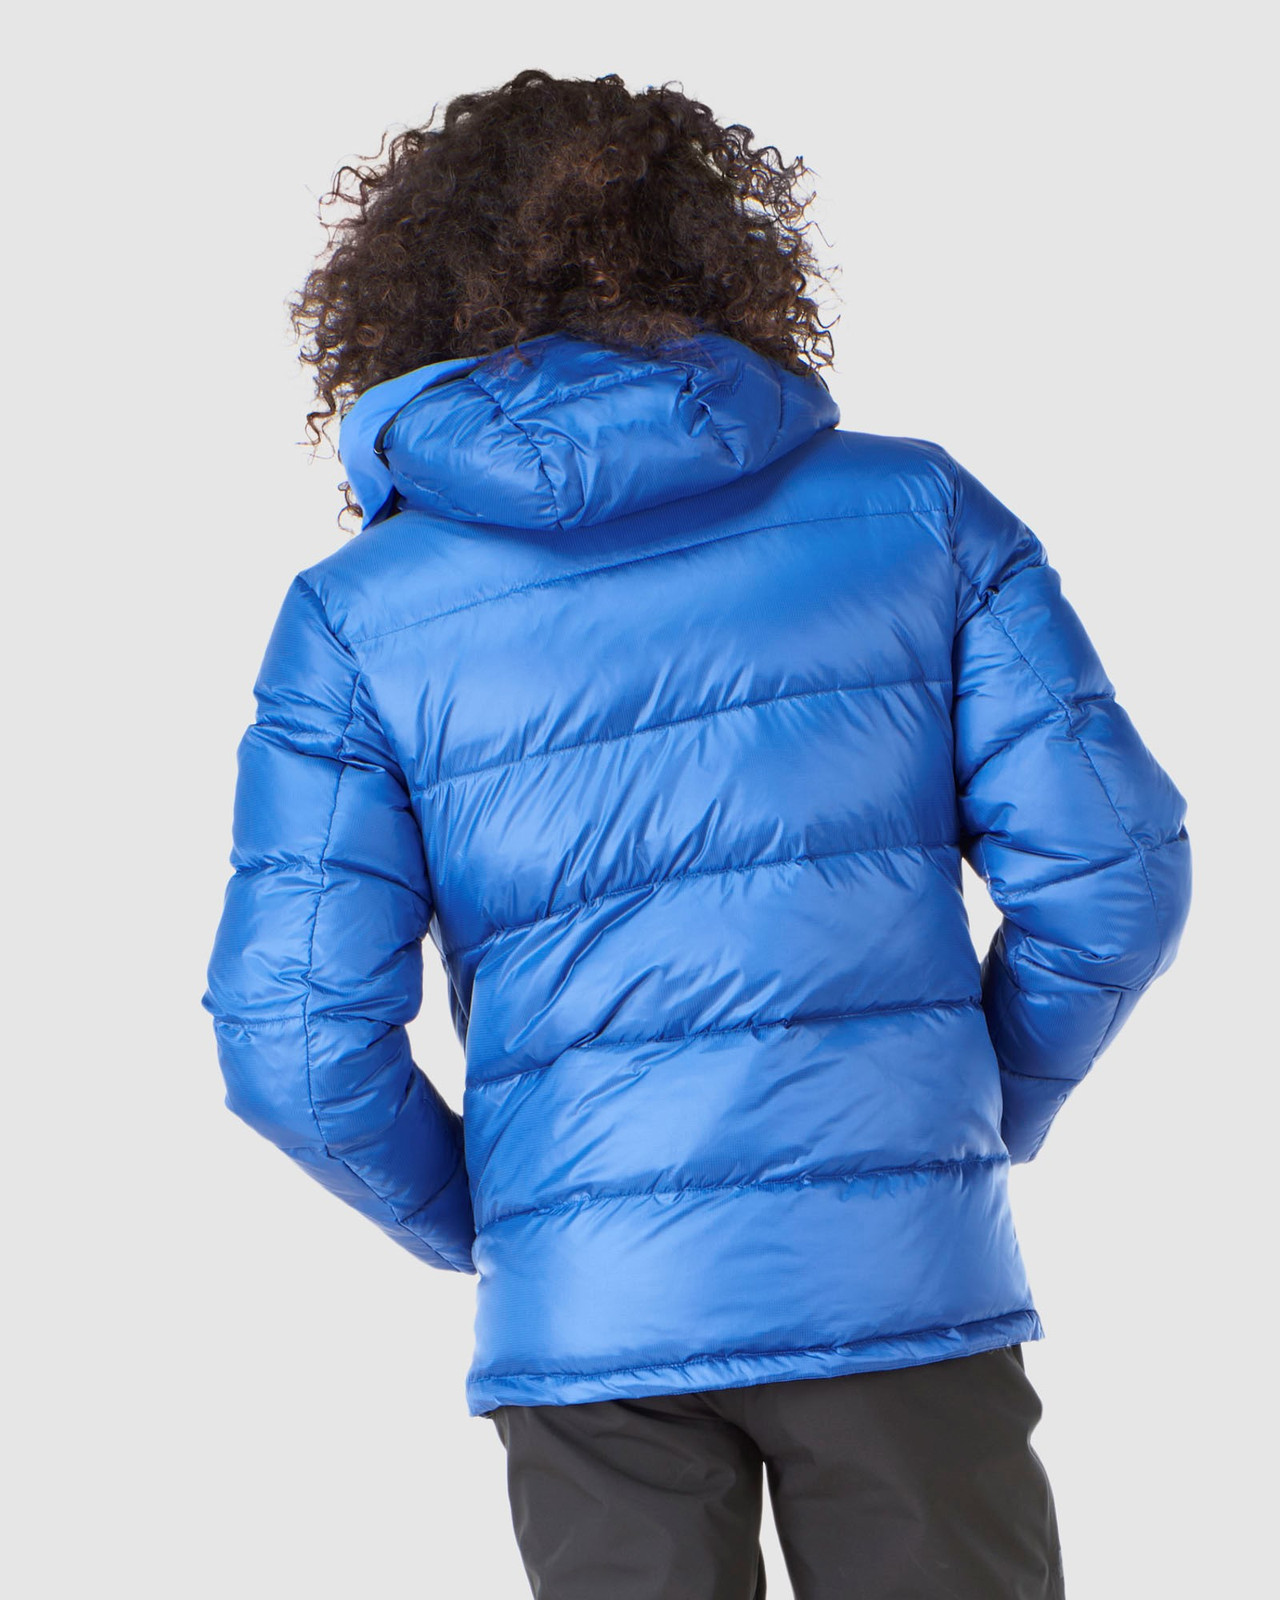 Superdry Mens MOUNTAIN PRO RACER PUFFER Blue Green Snow Jackets 3